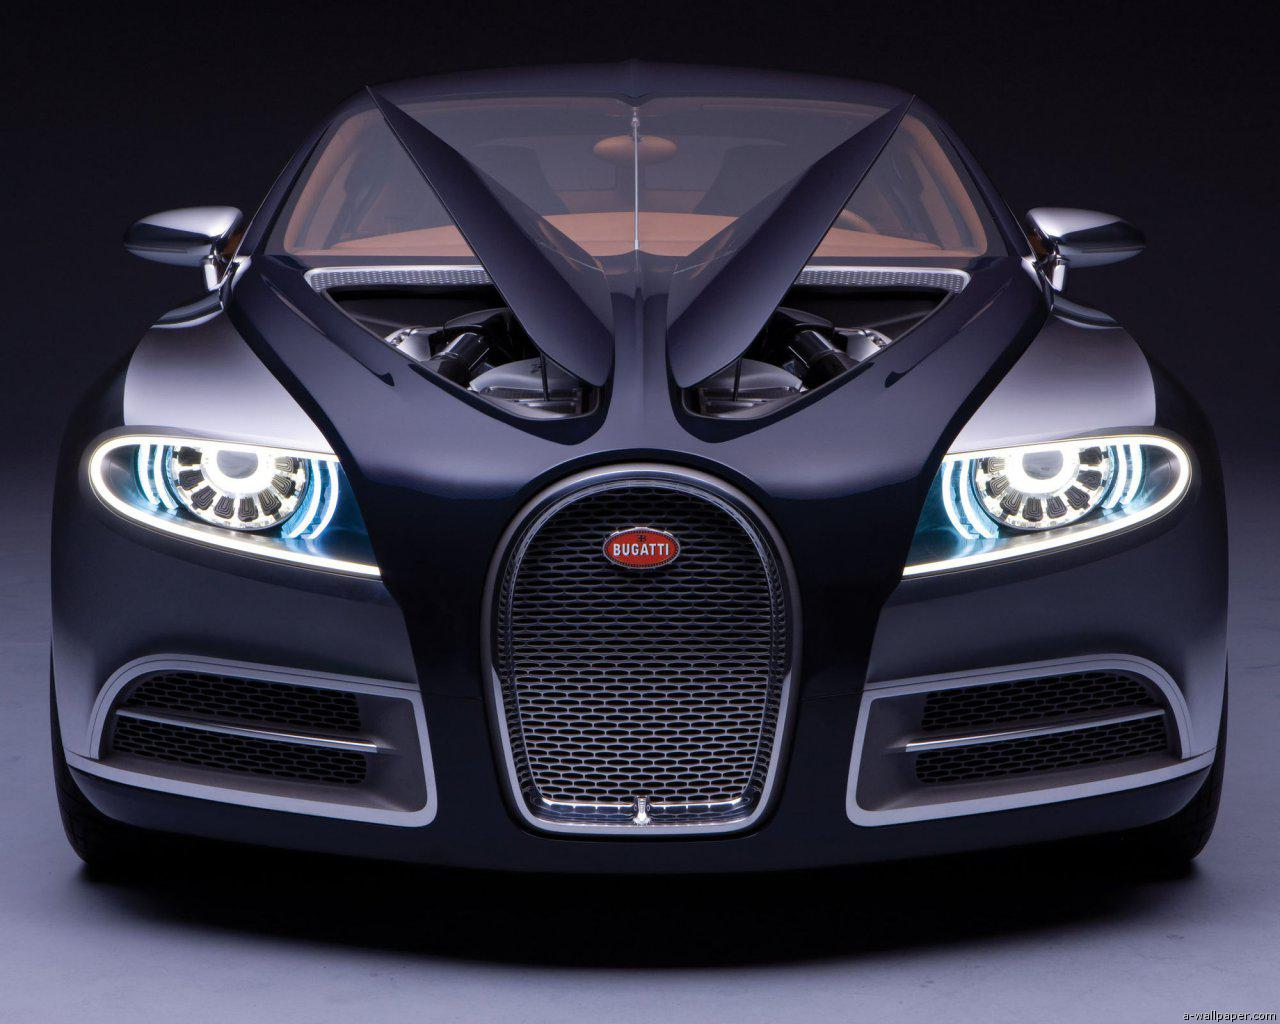 26 Views car wallpaper of Veyron FBG console wallpaper